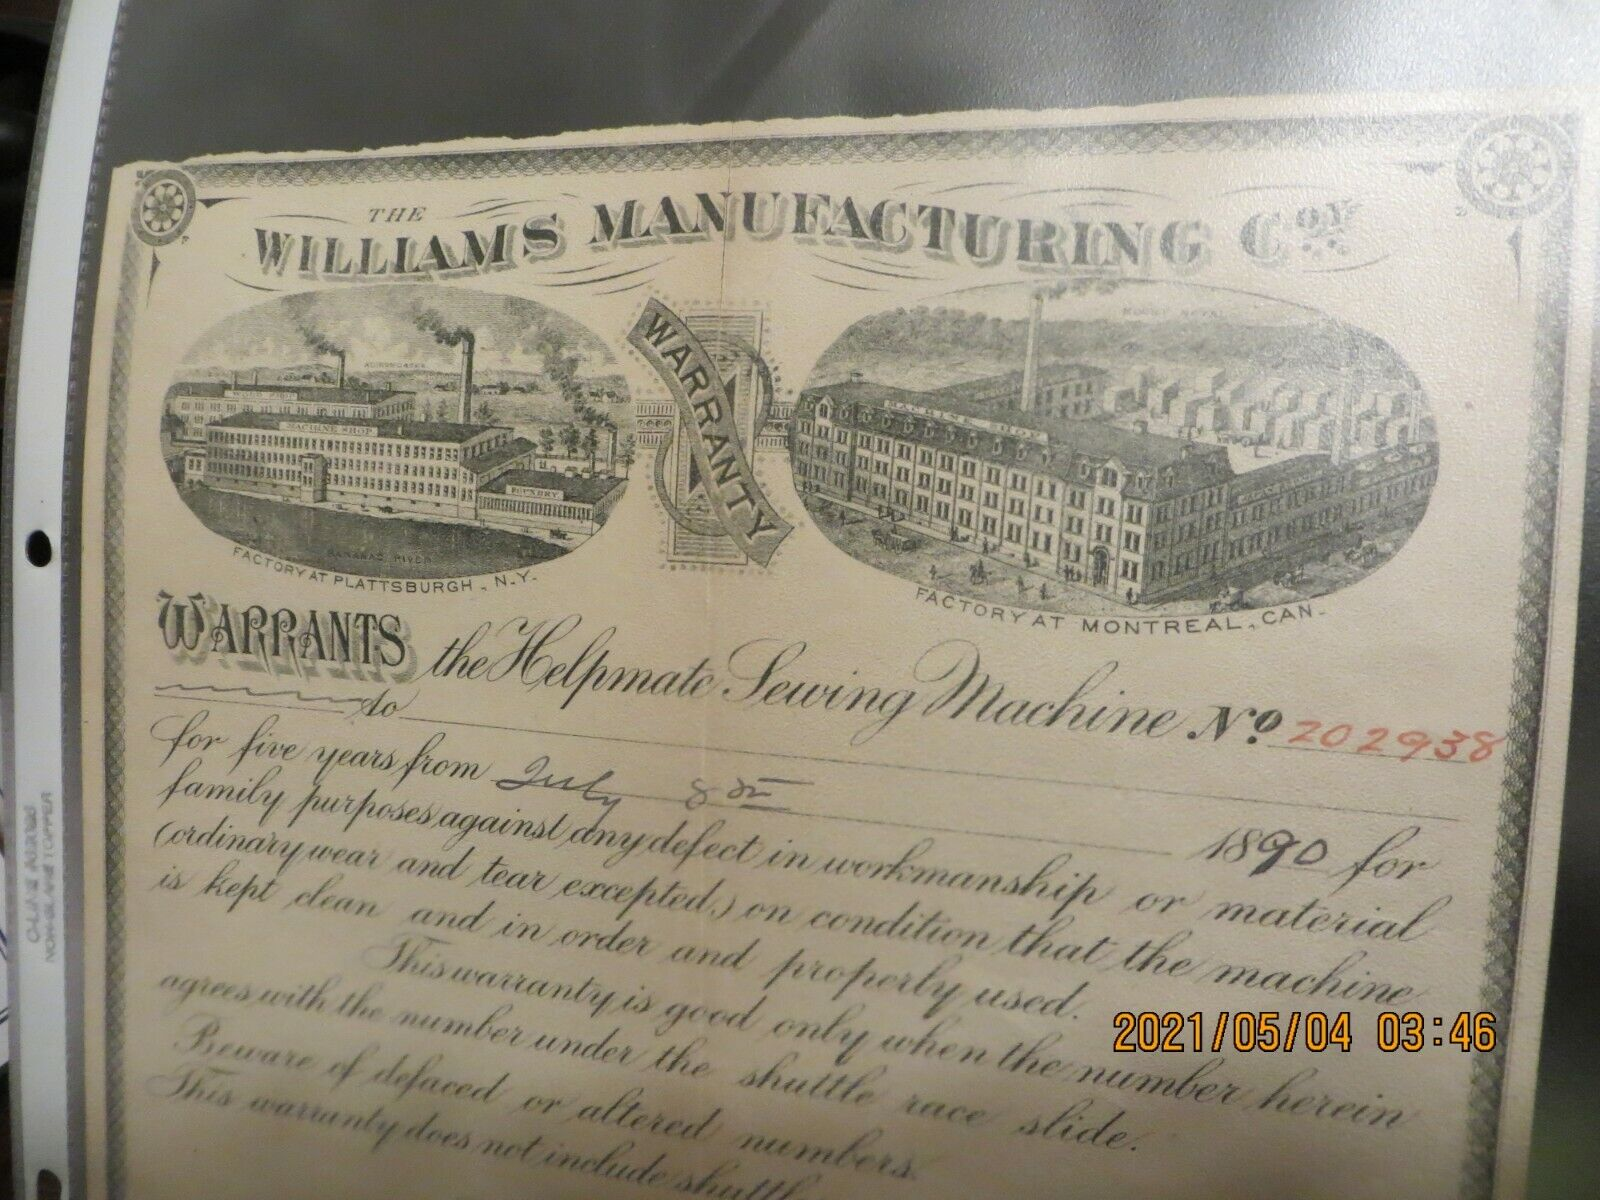 1890 Document-The Williams Manufacturing Co Warranty-Helpmate Sewing - $29.99